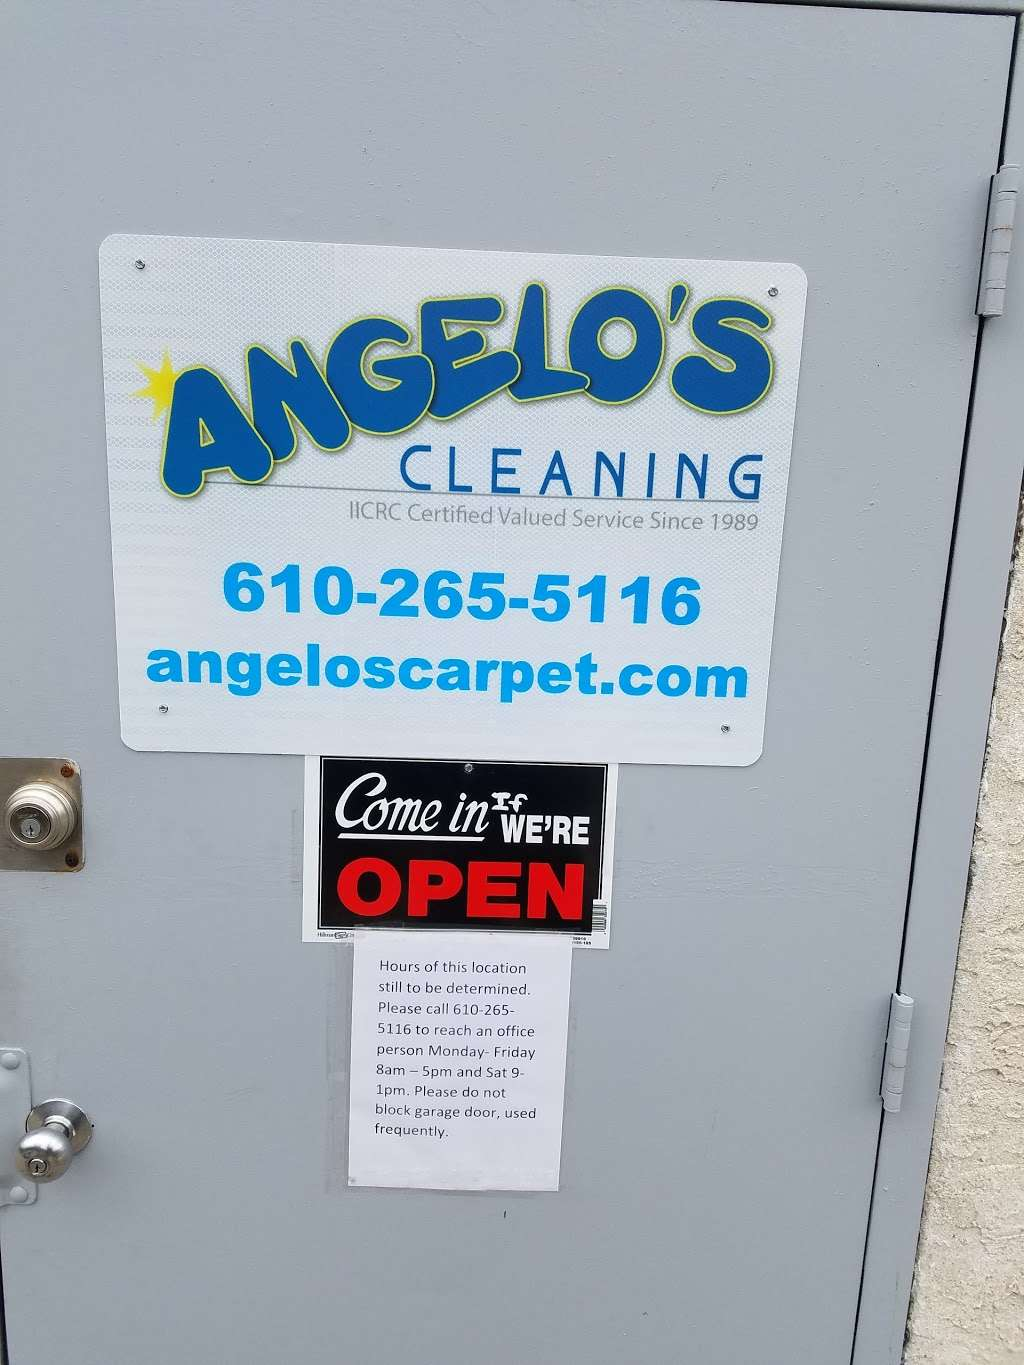 Angelos Cleaning - laundry  | Photo 2 of 5 | Address: 124 E. Hector St 1st Flr, Conshohocken, PA 19428, USA | Phone: (610) 265-5116